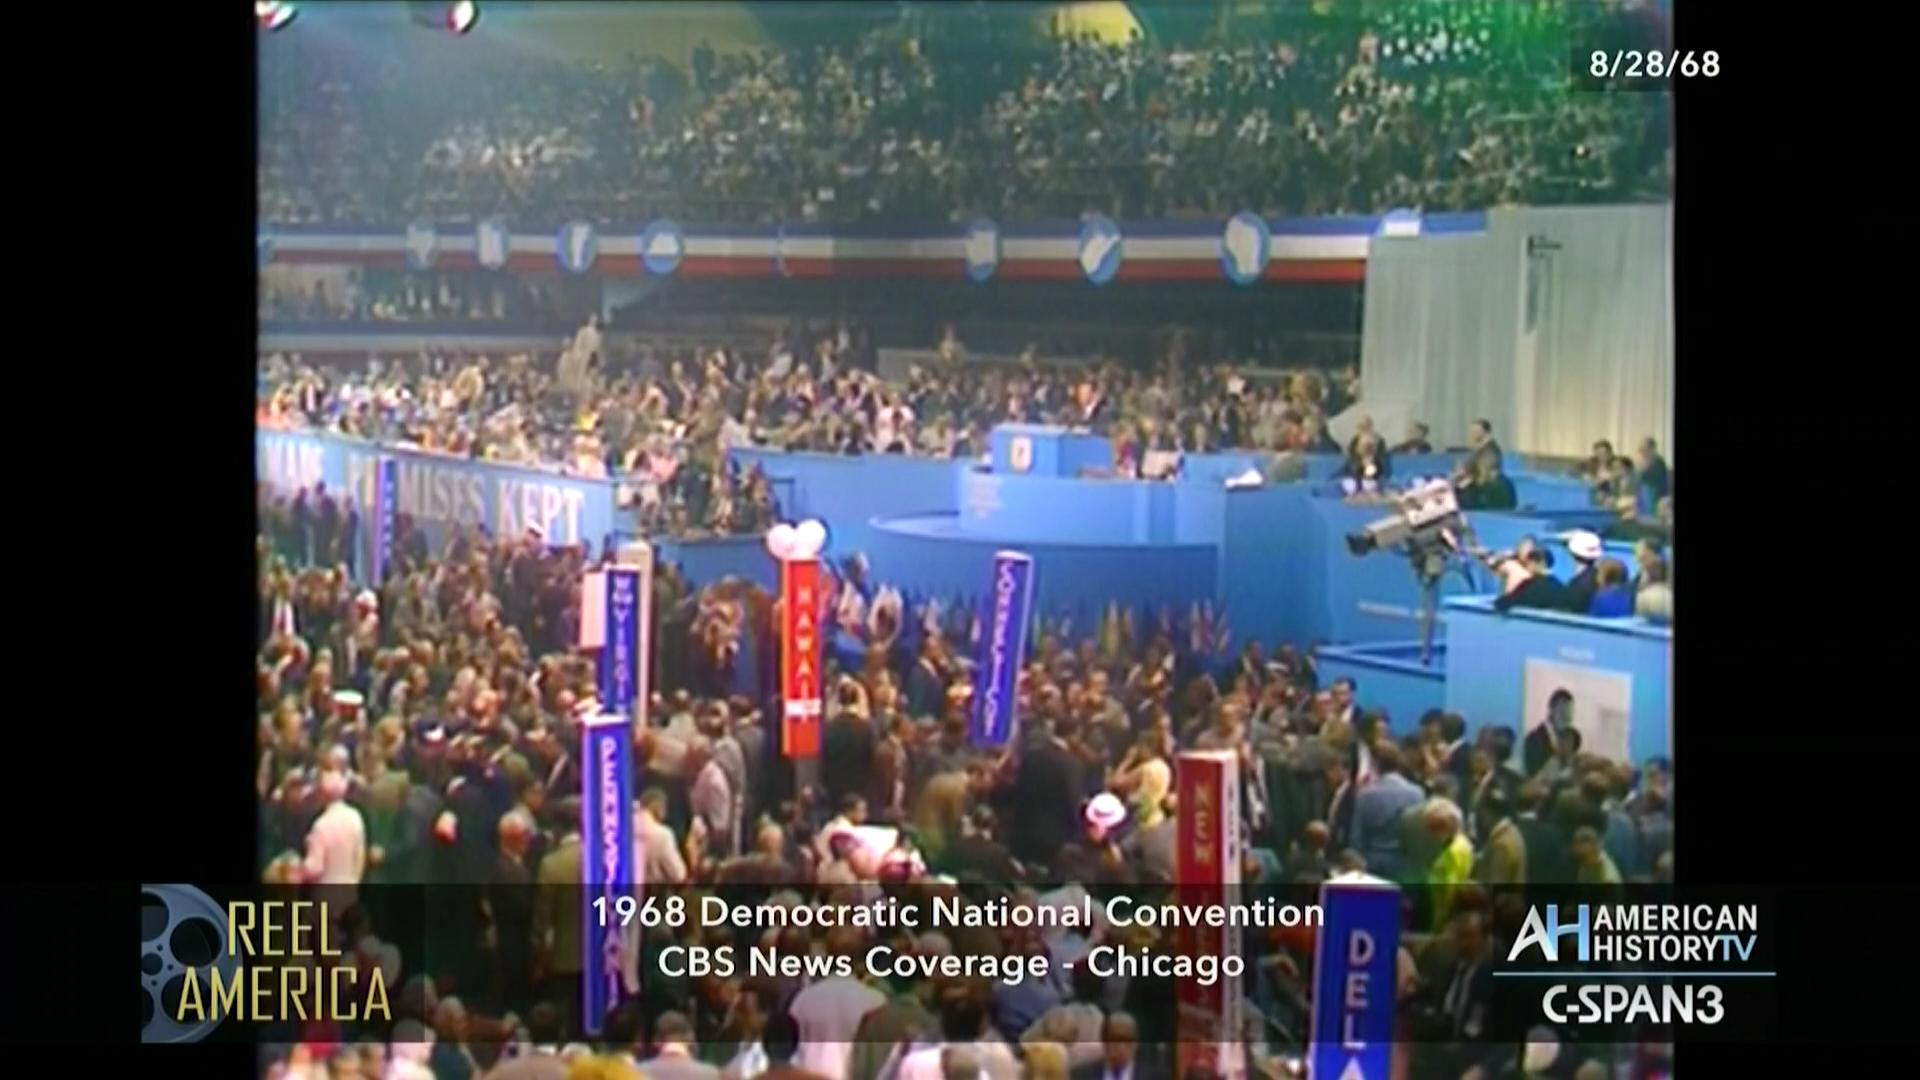 CBS News 1968 Democratic National Convention Coverage Aug 28